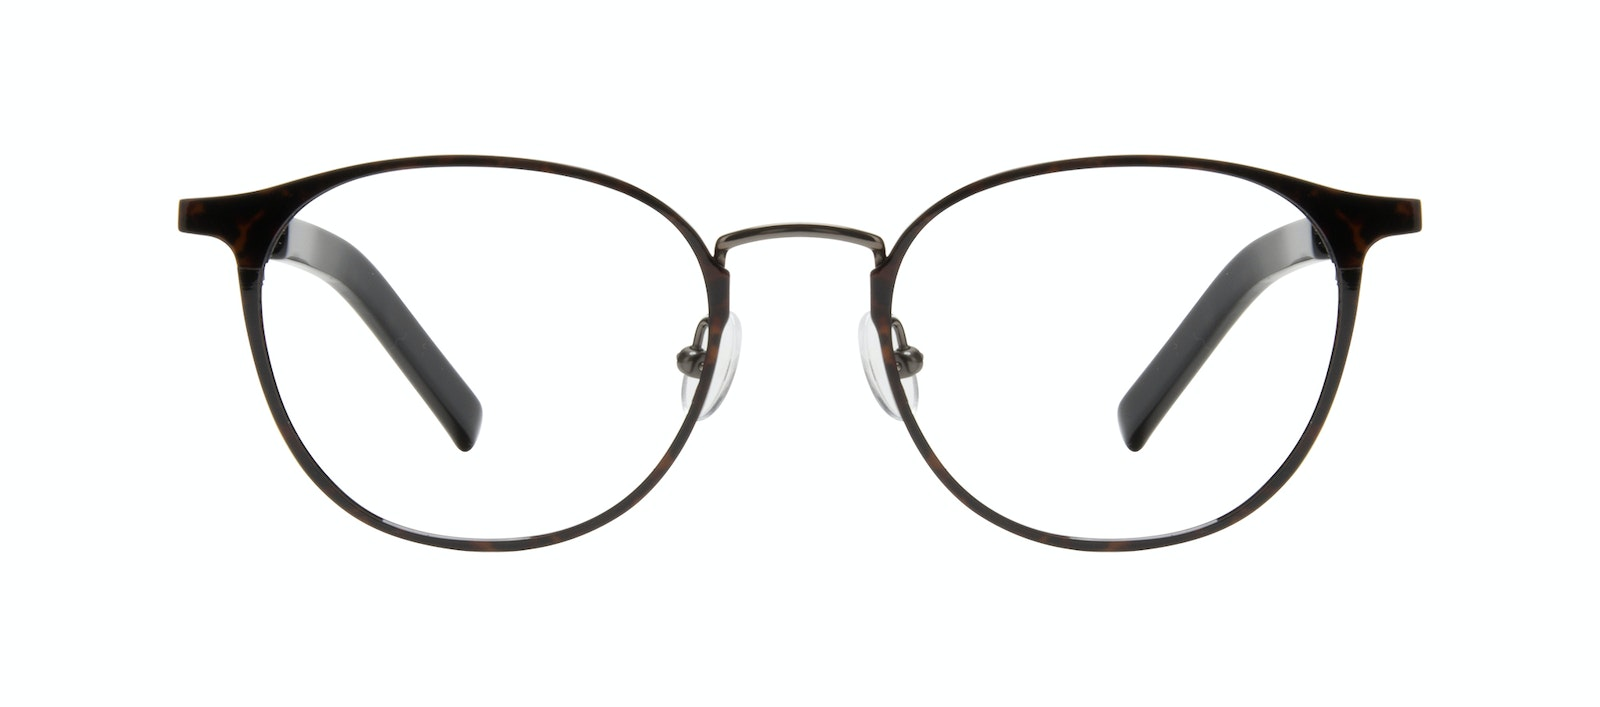 Affordable Fashion Glasses Round Eyeglasses Men Point Tortoise Front